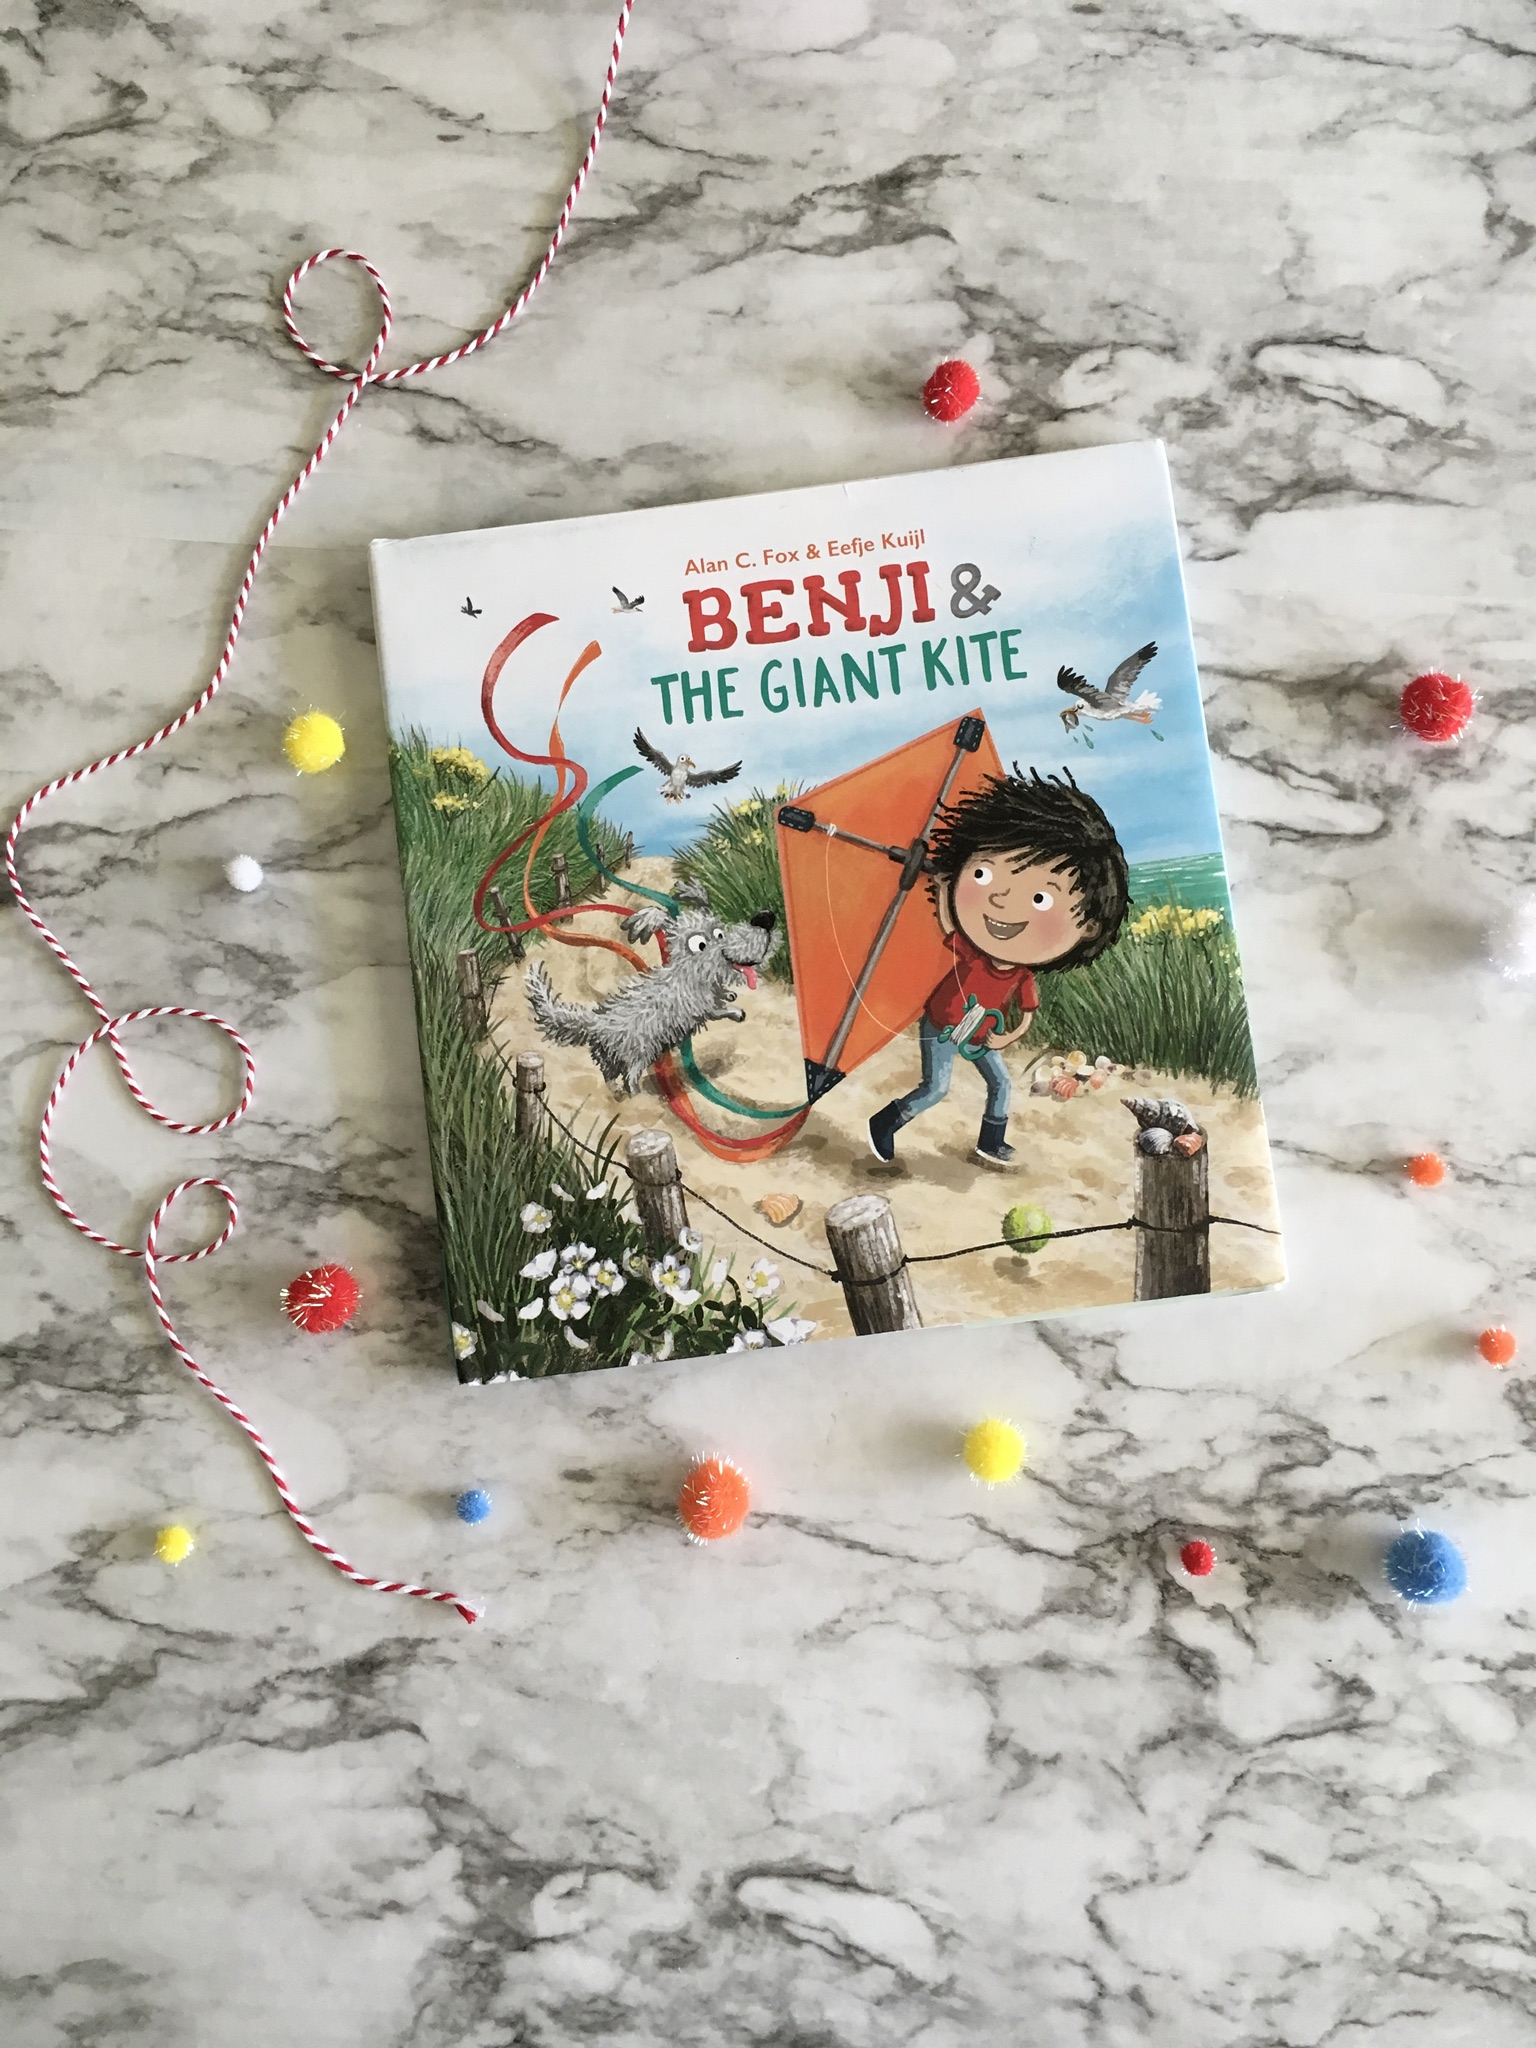 Benji & The Giant Kite, Children's Book Review